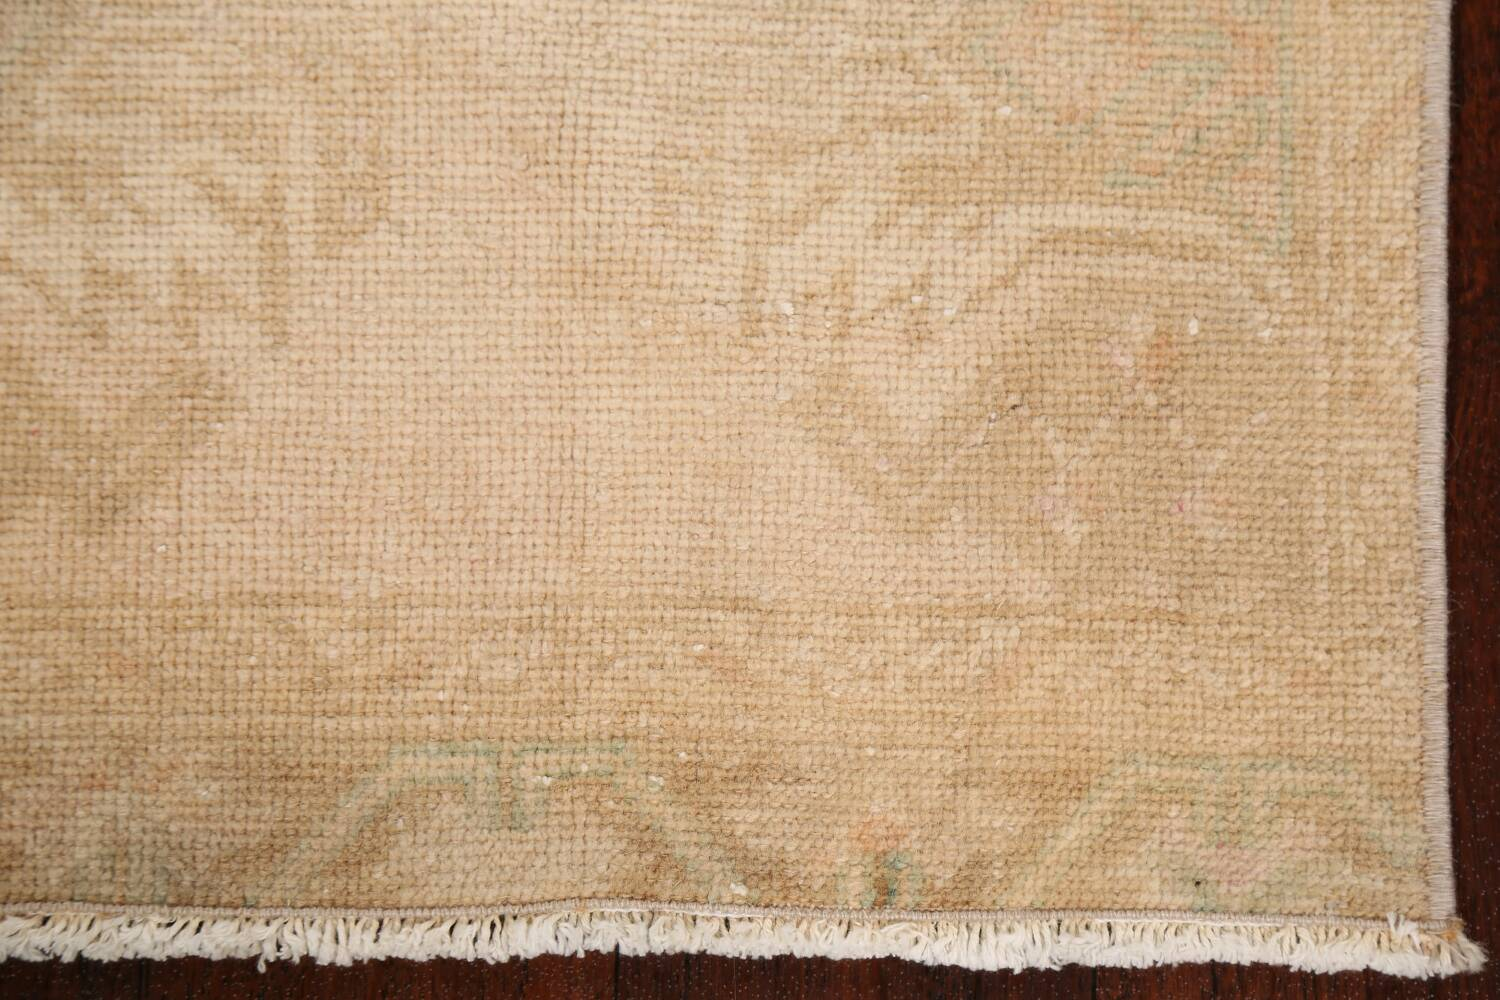 Muted Pale Orange Anatolian Turkish Area Rug 2x3 image 5